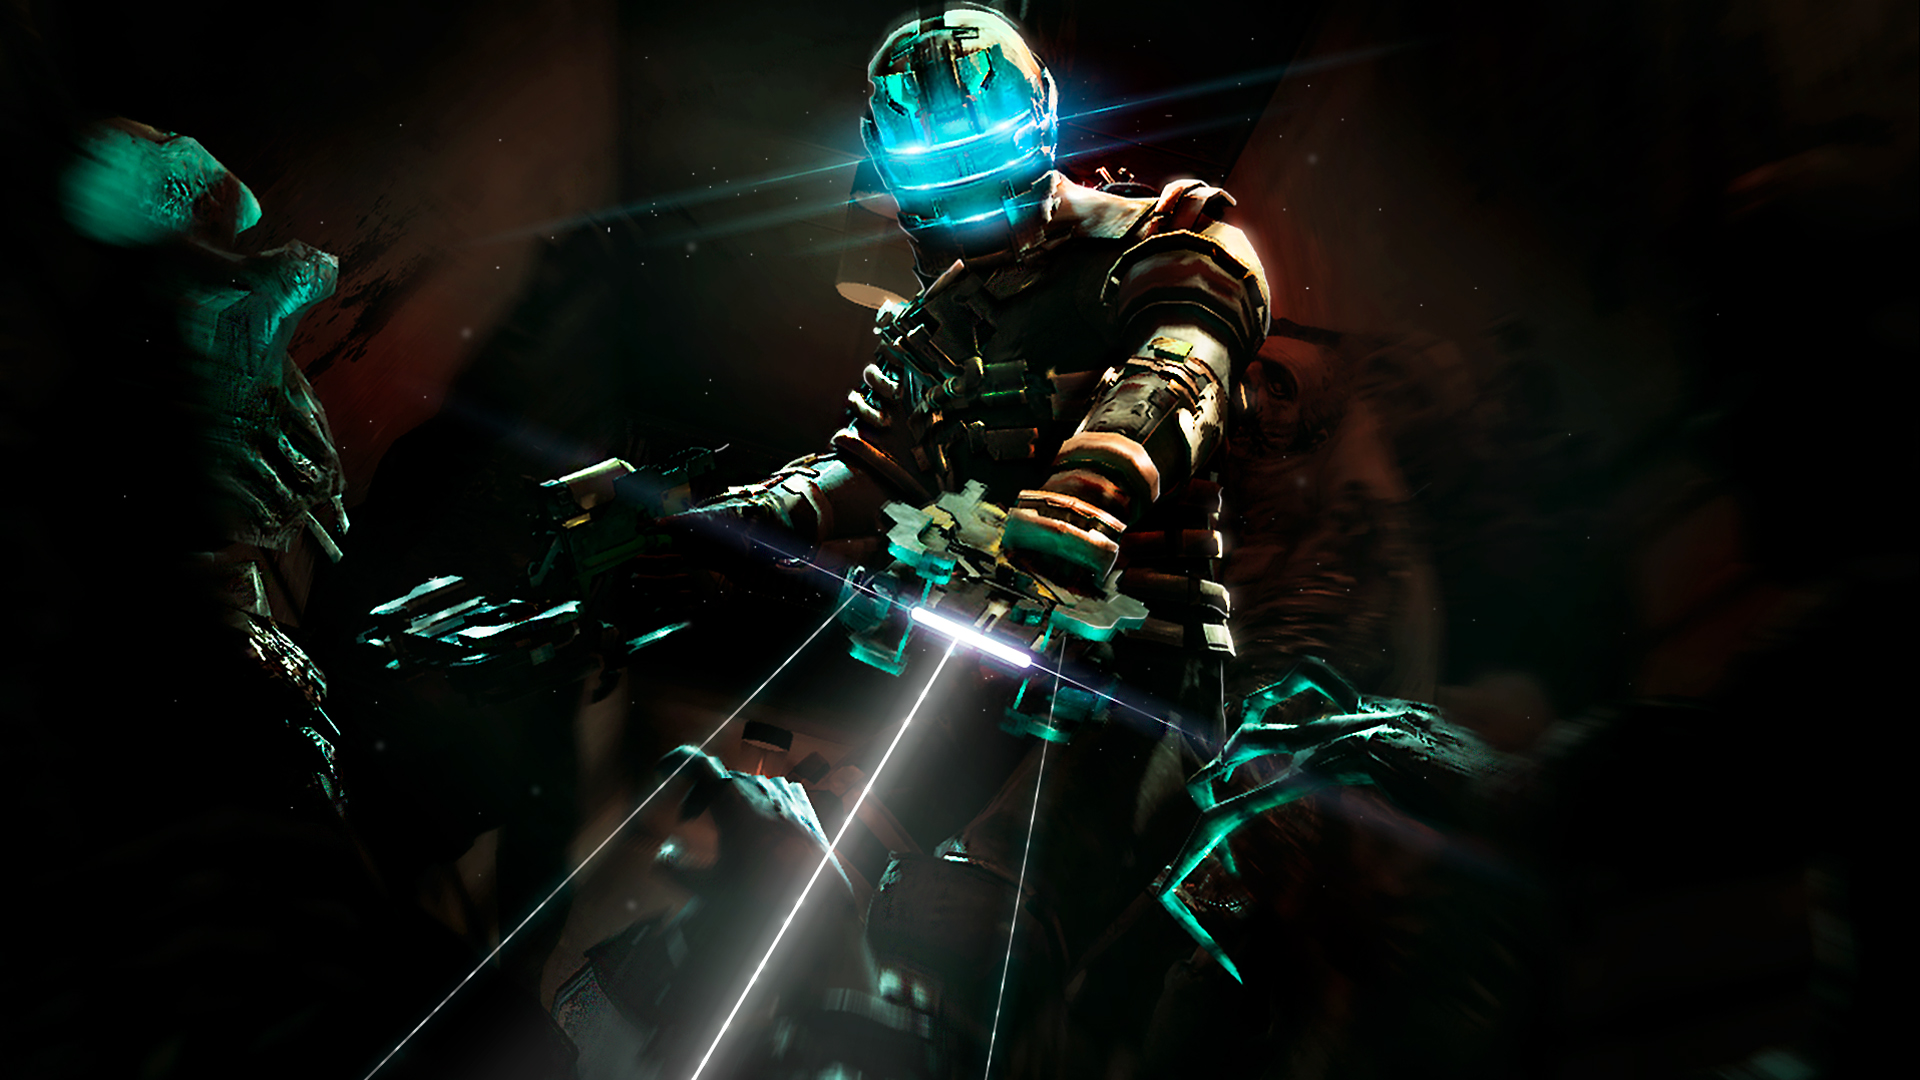 73 Dead Space 3 HD Wallpapers | Backgrounds - Wallpaper Abyss - Page 3